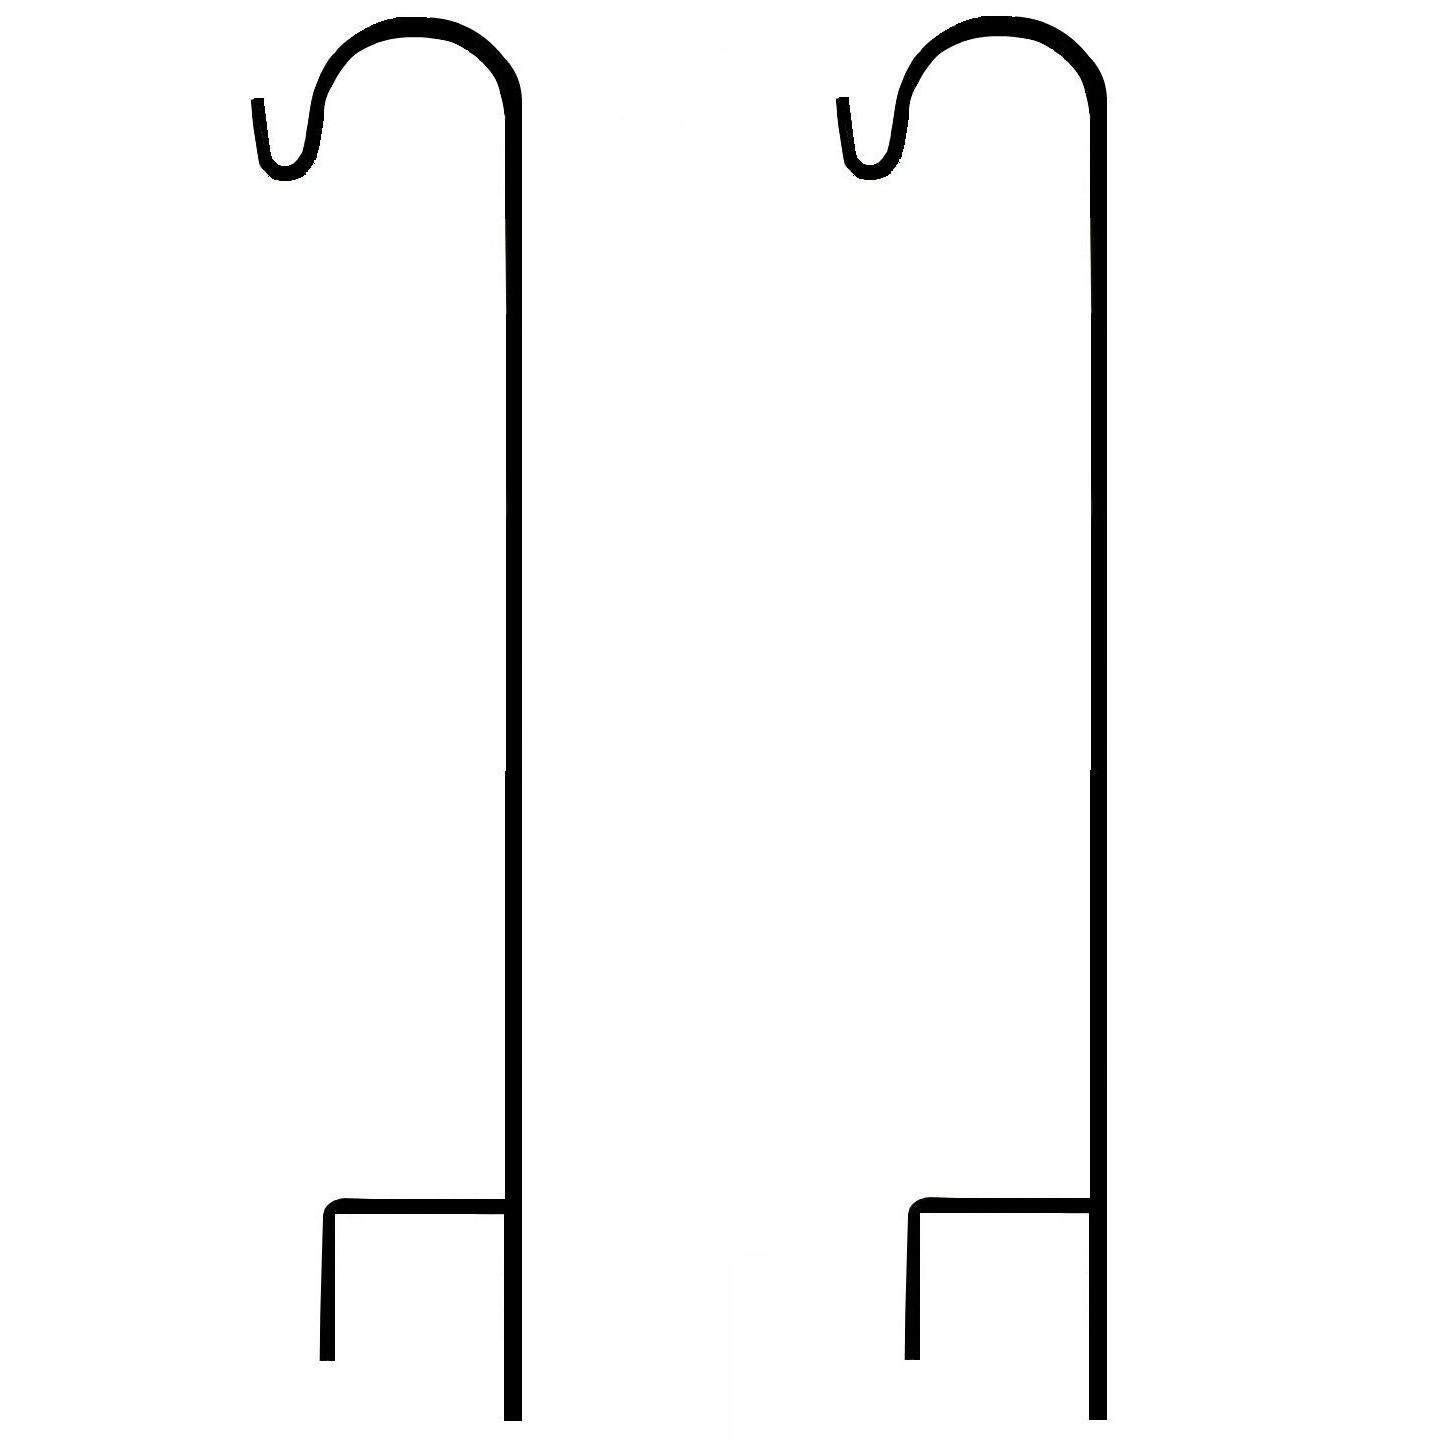 Shepherd Hook 48 Inch Tall 8MM Thick,Set of 2, Made from Solid Steel, Strong Enough for hanging Solar Lights, Flower Baskets, Bird Feeders and More